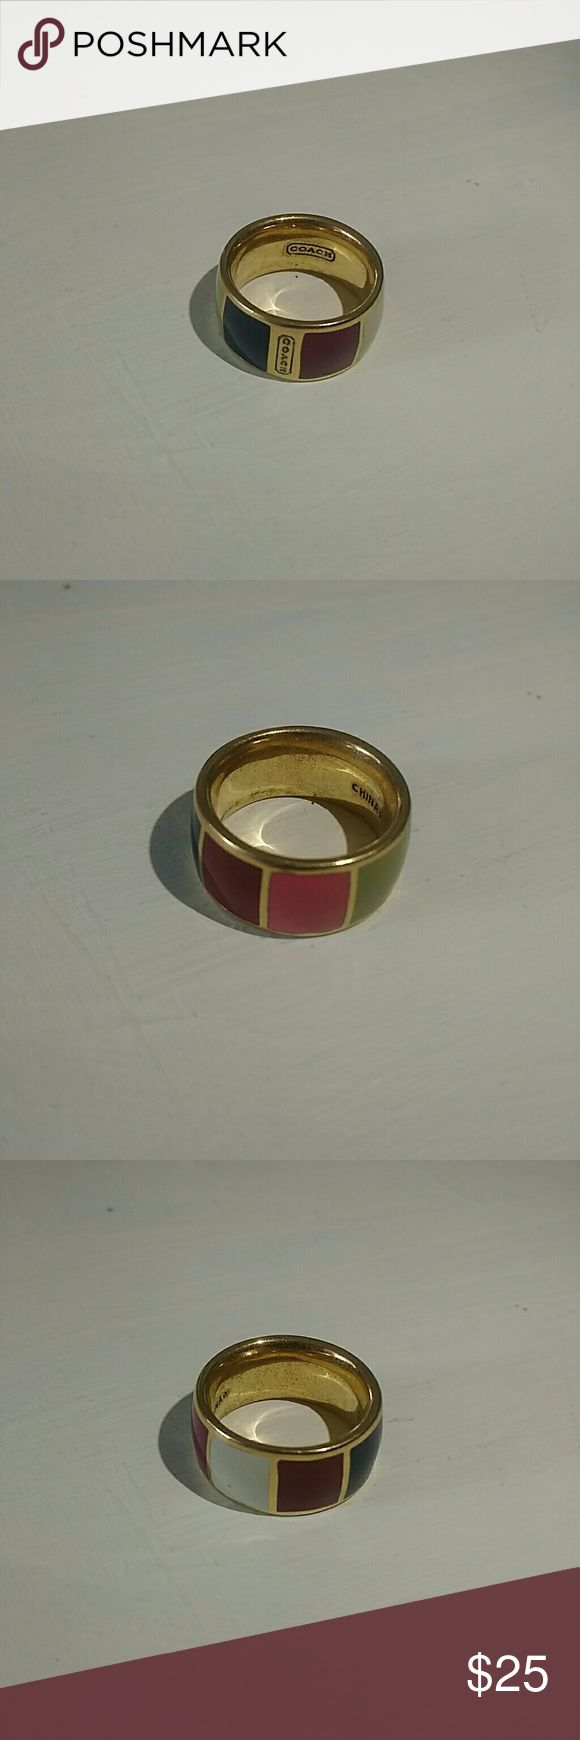 Coach Legacy Stripe Gold Enamel Ring Multi-color beautiful Coach ring. Great quality. Only worn a couple times. Coach Jewelry Rings